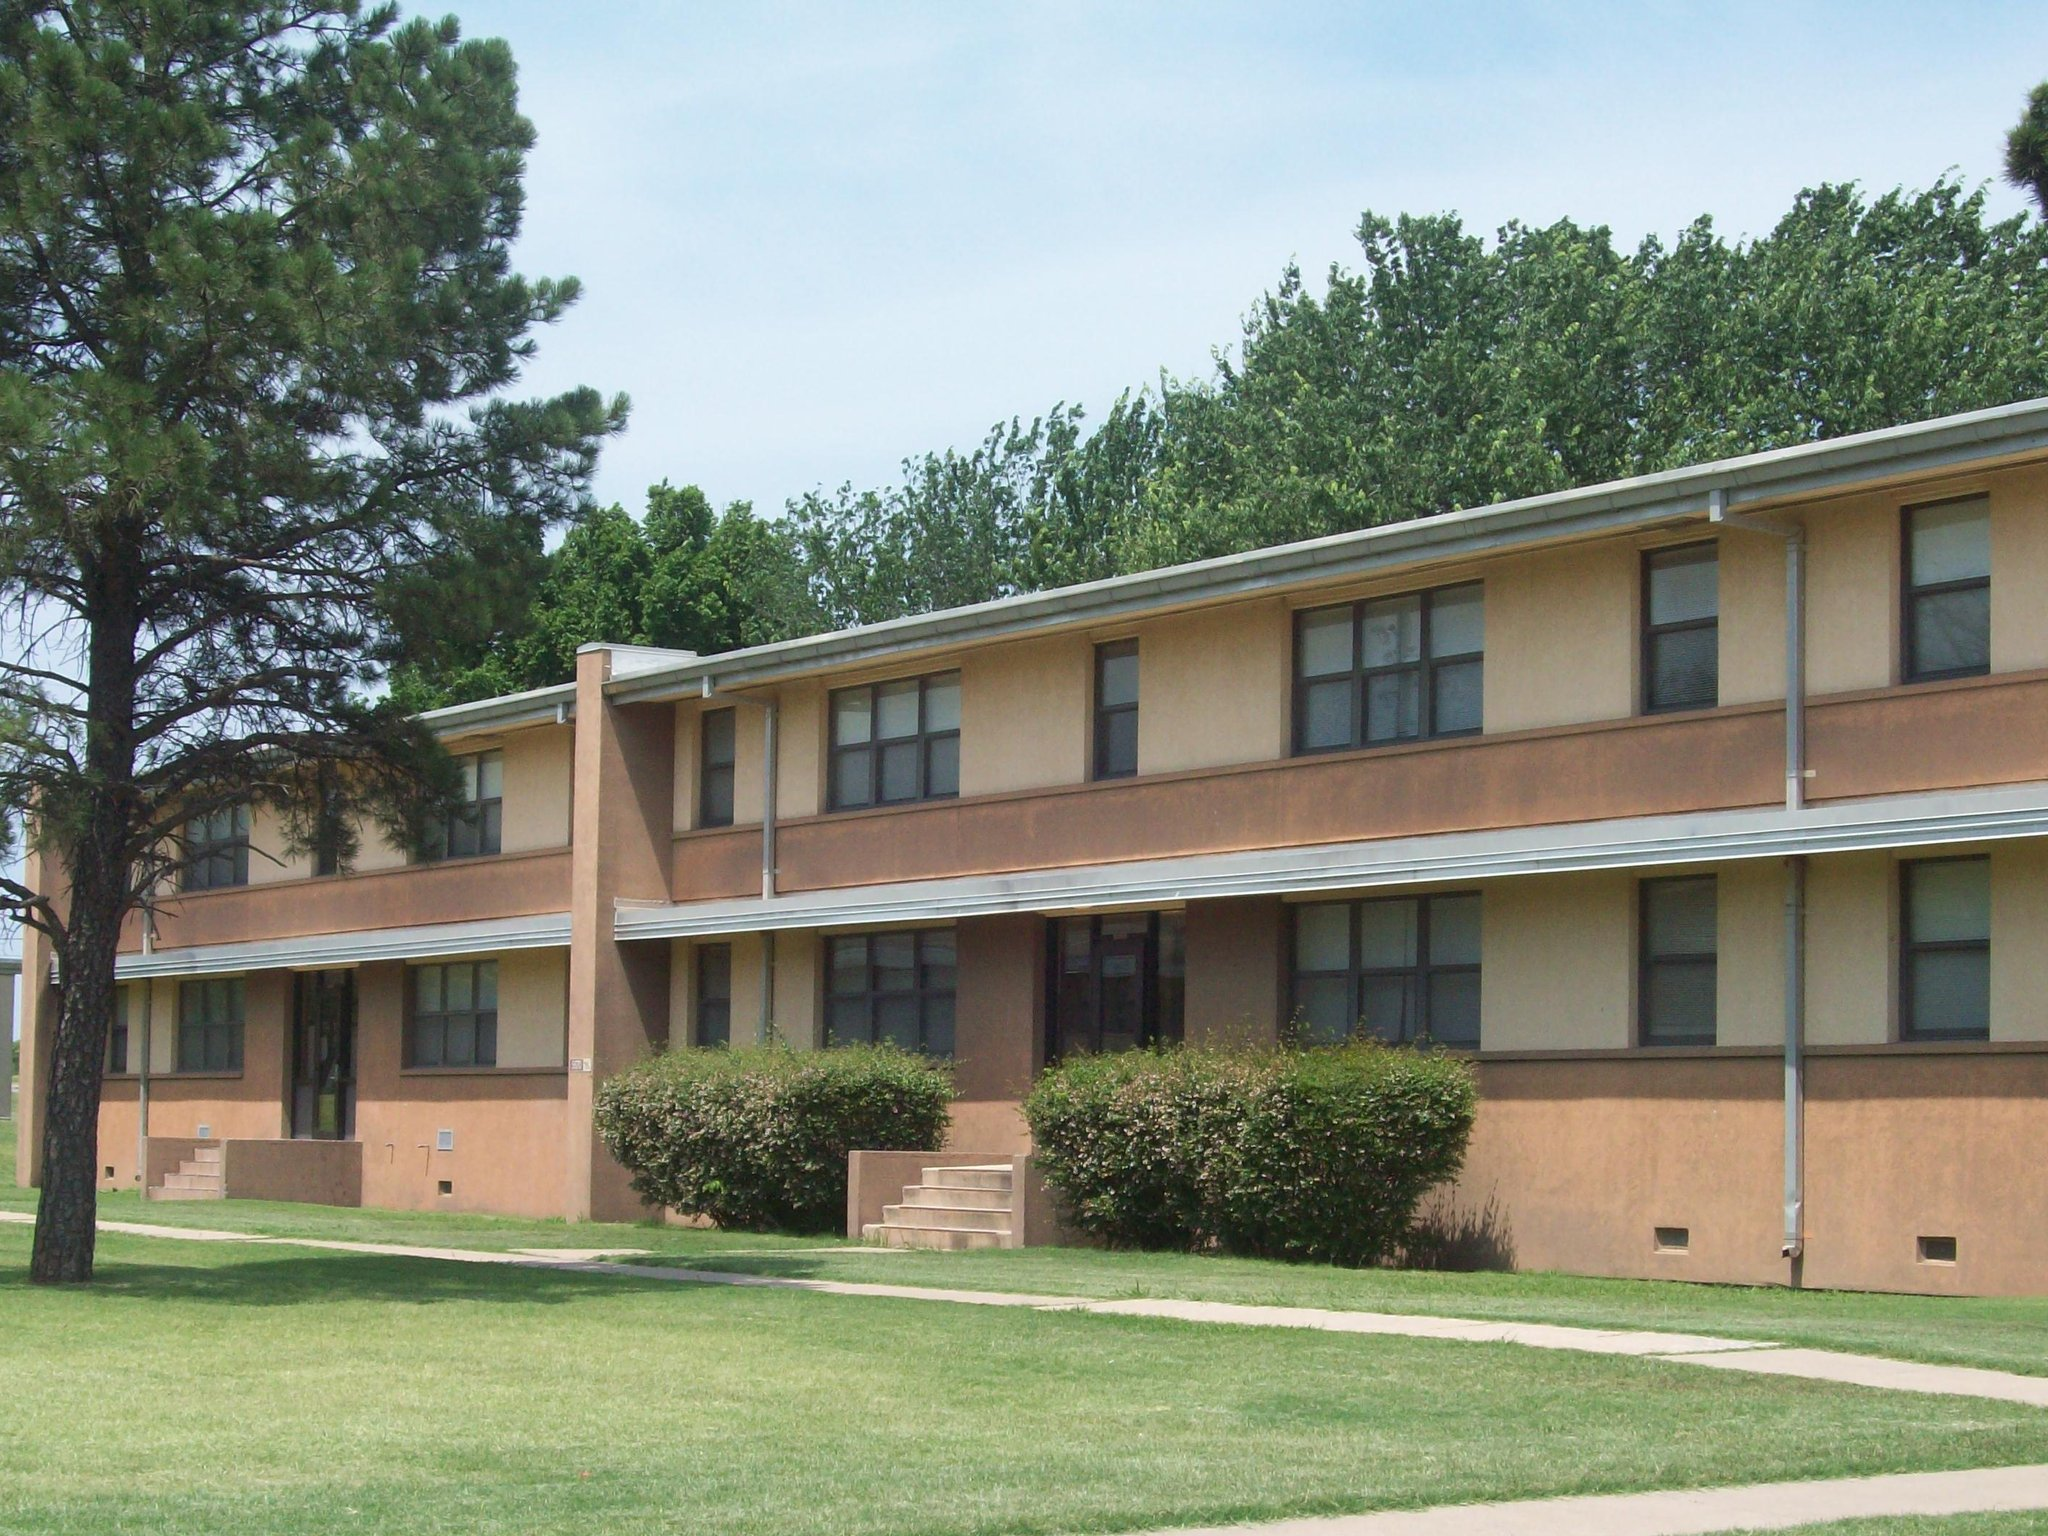 IHG Army Hotels on Fort Sill, 5670 Series